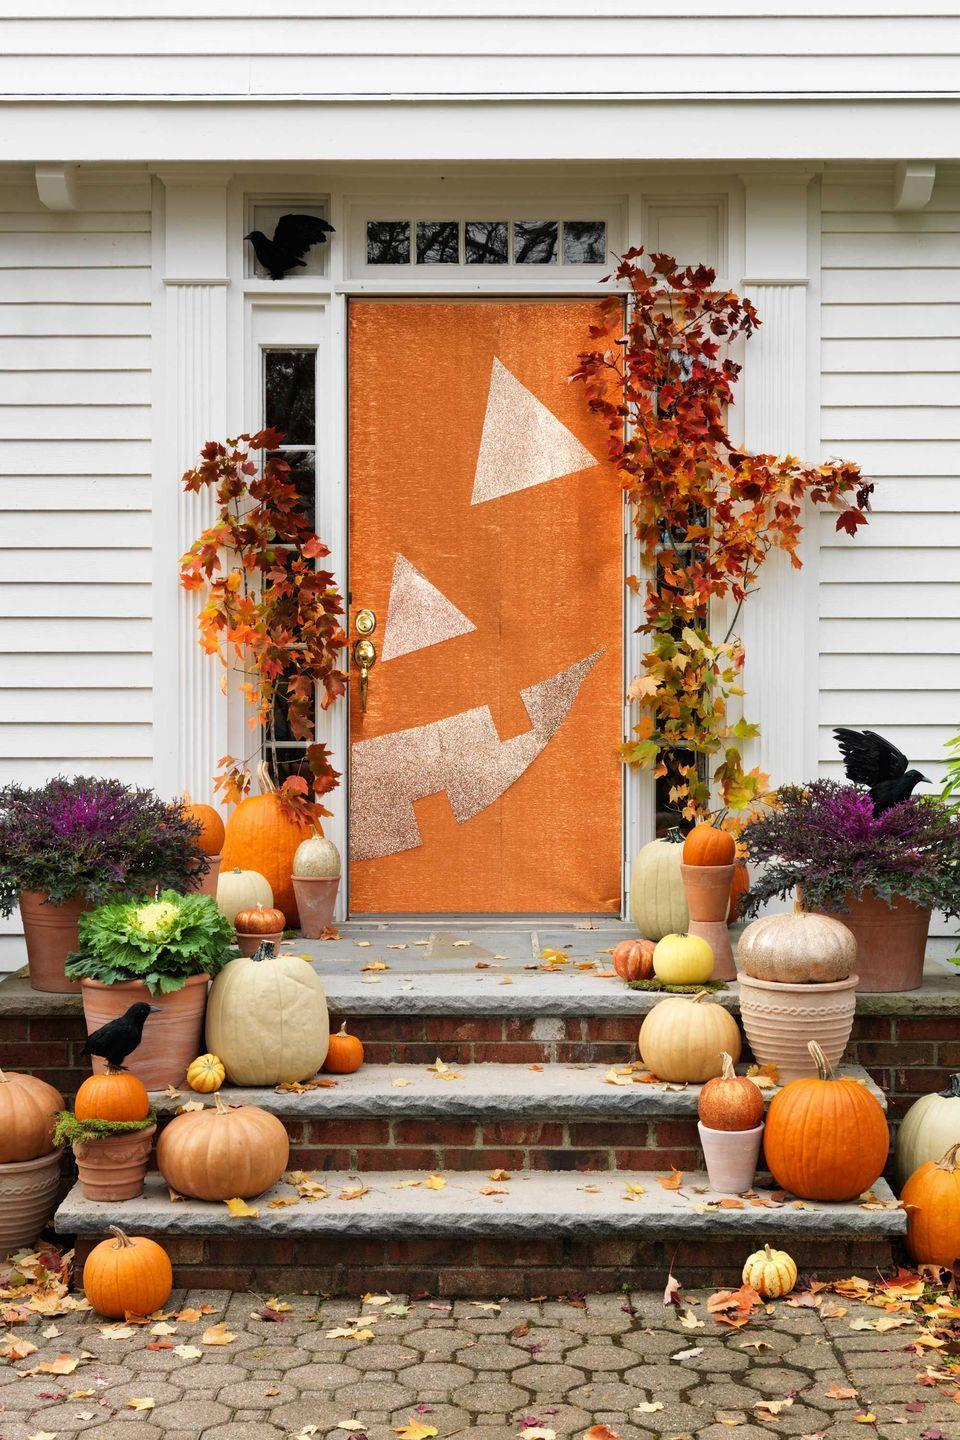 "<p>Looking for last-minute Halloween decor? Just cut, tape, and hang some wrapping paper, and this statement is ready for visitors.</p><p><strong>Make the Jack-o'-Lantern Door: </strong>Cover door with orange wrapping paper, overlapping as necessary; secure with masking tape. Cut eye, nose, and mouth from gold glitter paper; tape to the door as shown. Cut a small hole in the top of large pumpkins with a craft knife. Insert the leaf branches; push down until secure. Secure branches to door with fishing line and a small nail. Spray small pumpkins with spray adhesive; dust with glitter; let dry. Arrange cabbages and pumpkins in planters on the steps. Add faux crows, if desired; secure with fishing line as needed.</p><p><a class=""link rapid-noclick-resp"" href=""https://www.amazon.com/JAM-Paper-Solid-Color-Wrapping/dp/B01DAF8H8S/?tag=syn-yahoo-20&ascsubtag=%5Bartid%7C10050.g.22350299%5Bsrc%7Cyahoo-us"" rel=""nofollow noopener"" target=""_blank"" data-ylk=""slk:SHOP ORANGE PAPER"">SHOP ORANGE PAPER</a><br></p>"